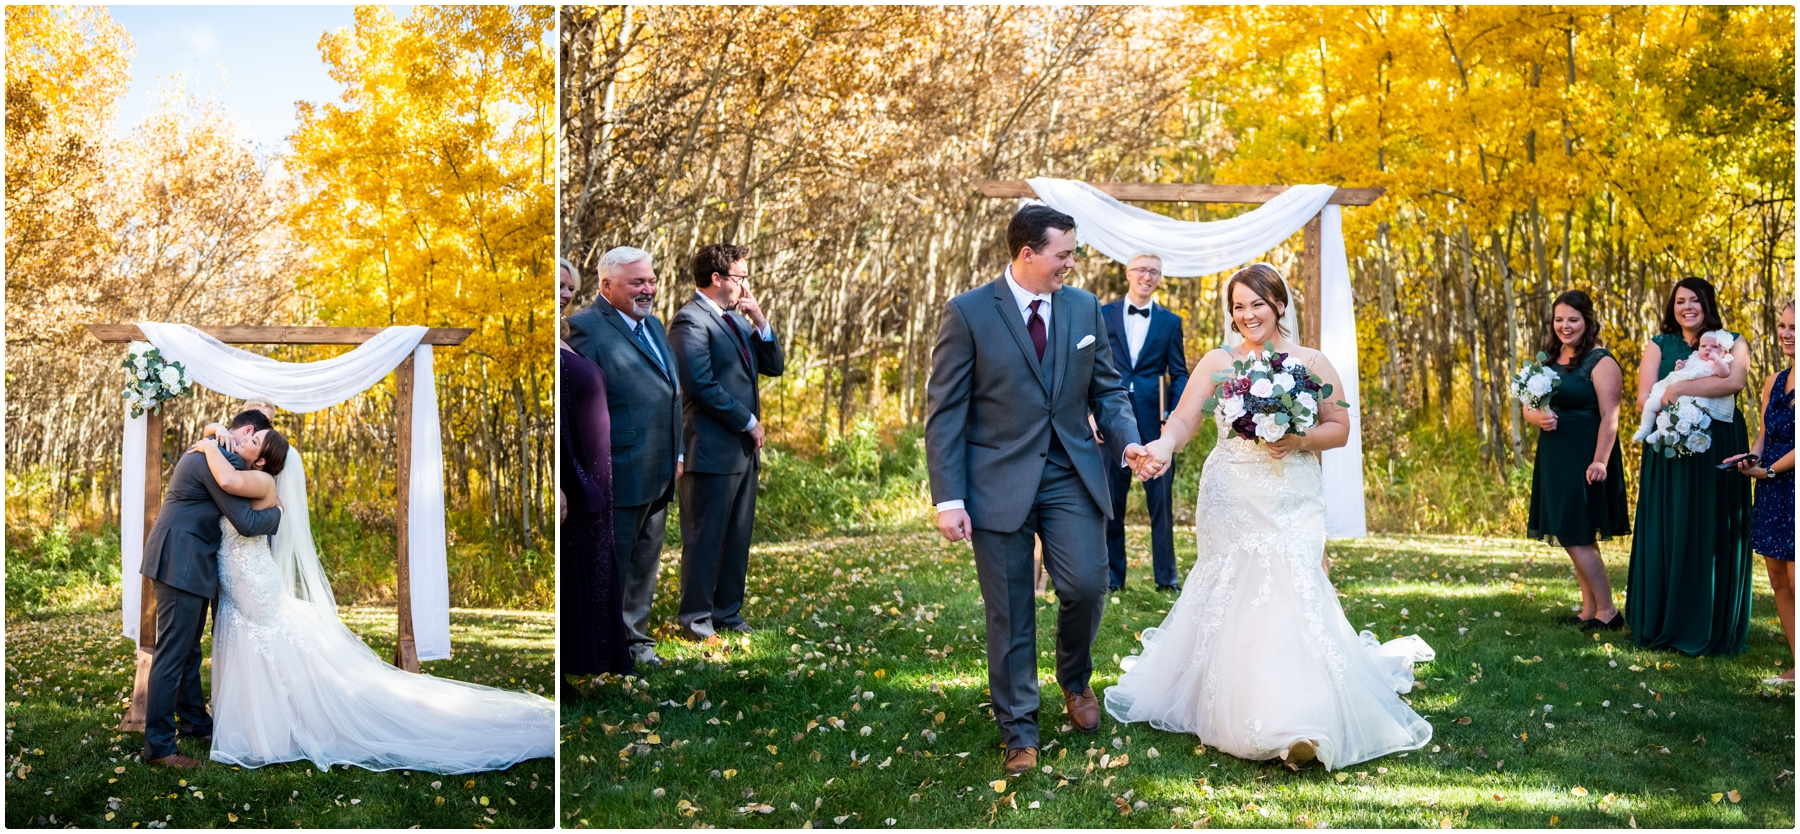 Calgary Mansion Backyard Wedding Ceremony Photographer